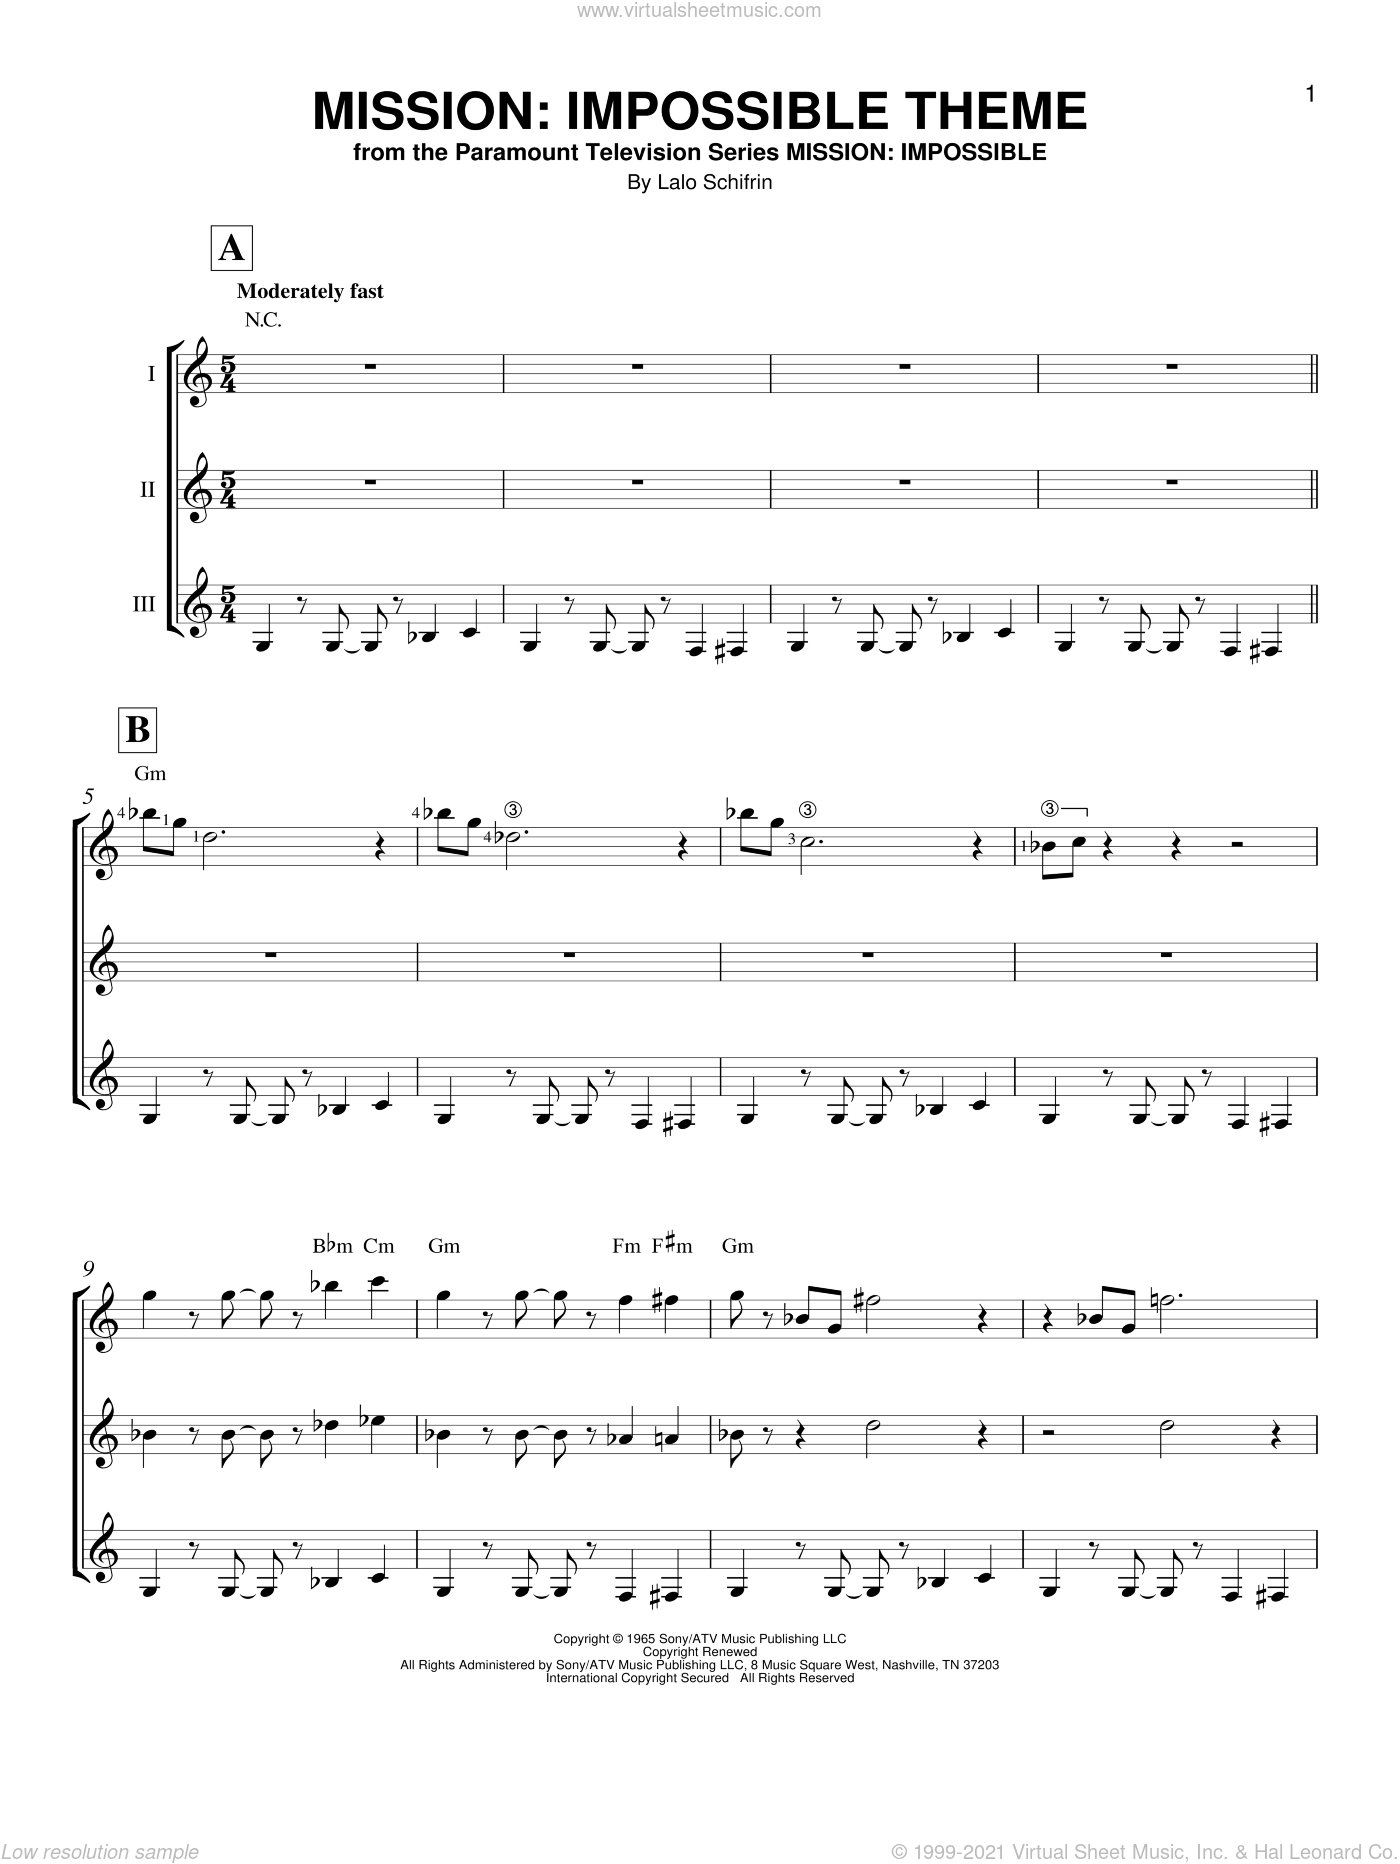 Mission: Impossible Theme sheet music for guitar ensemble by Lalo Schifrin